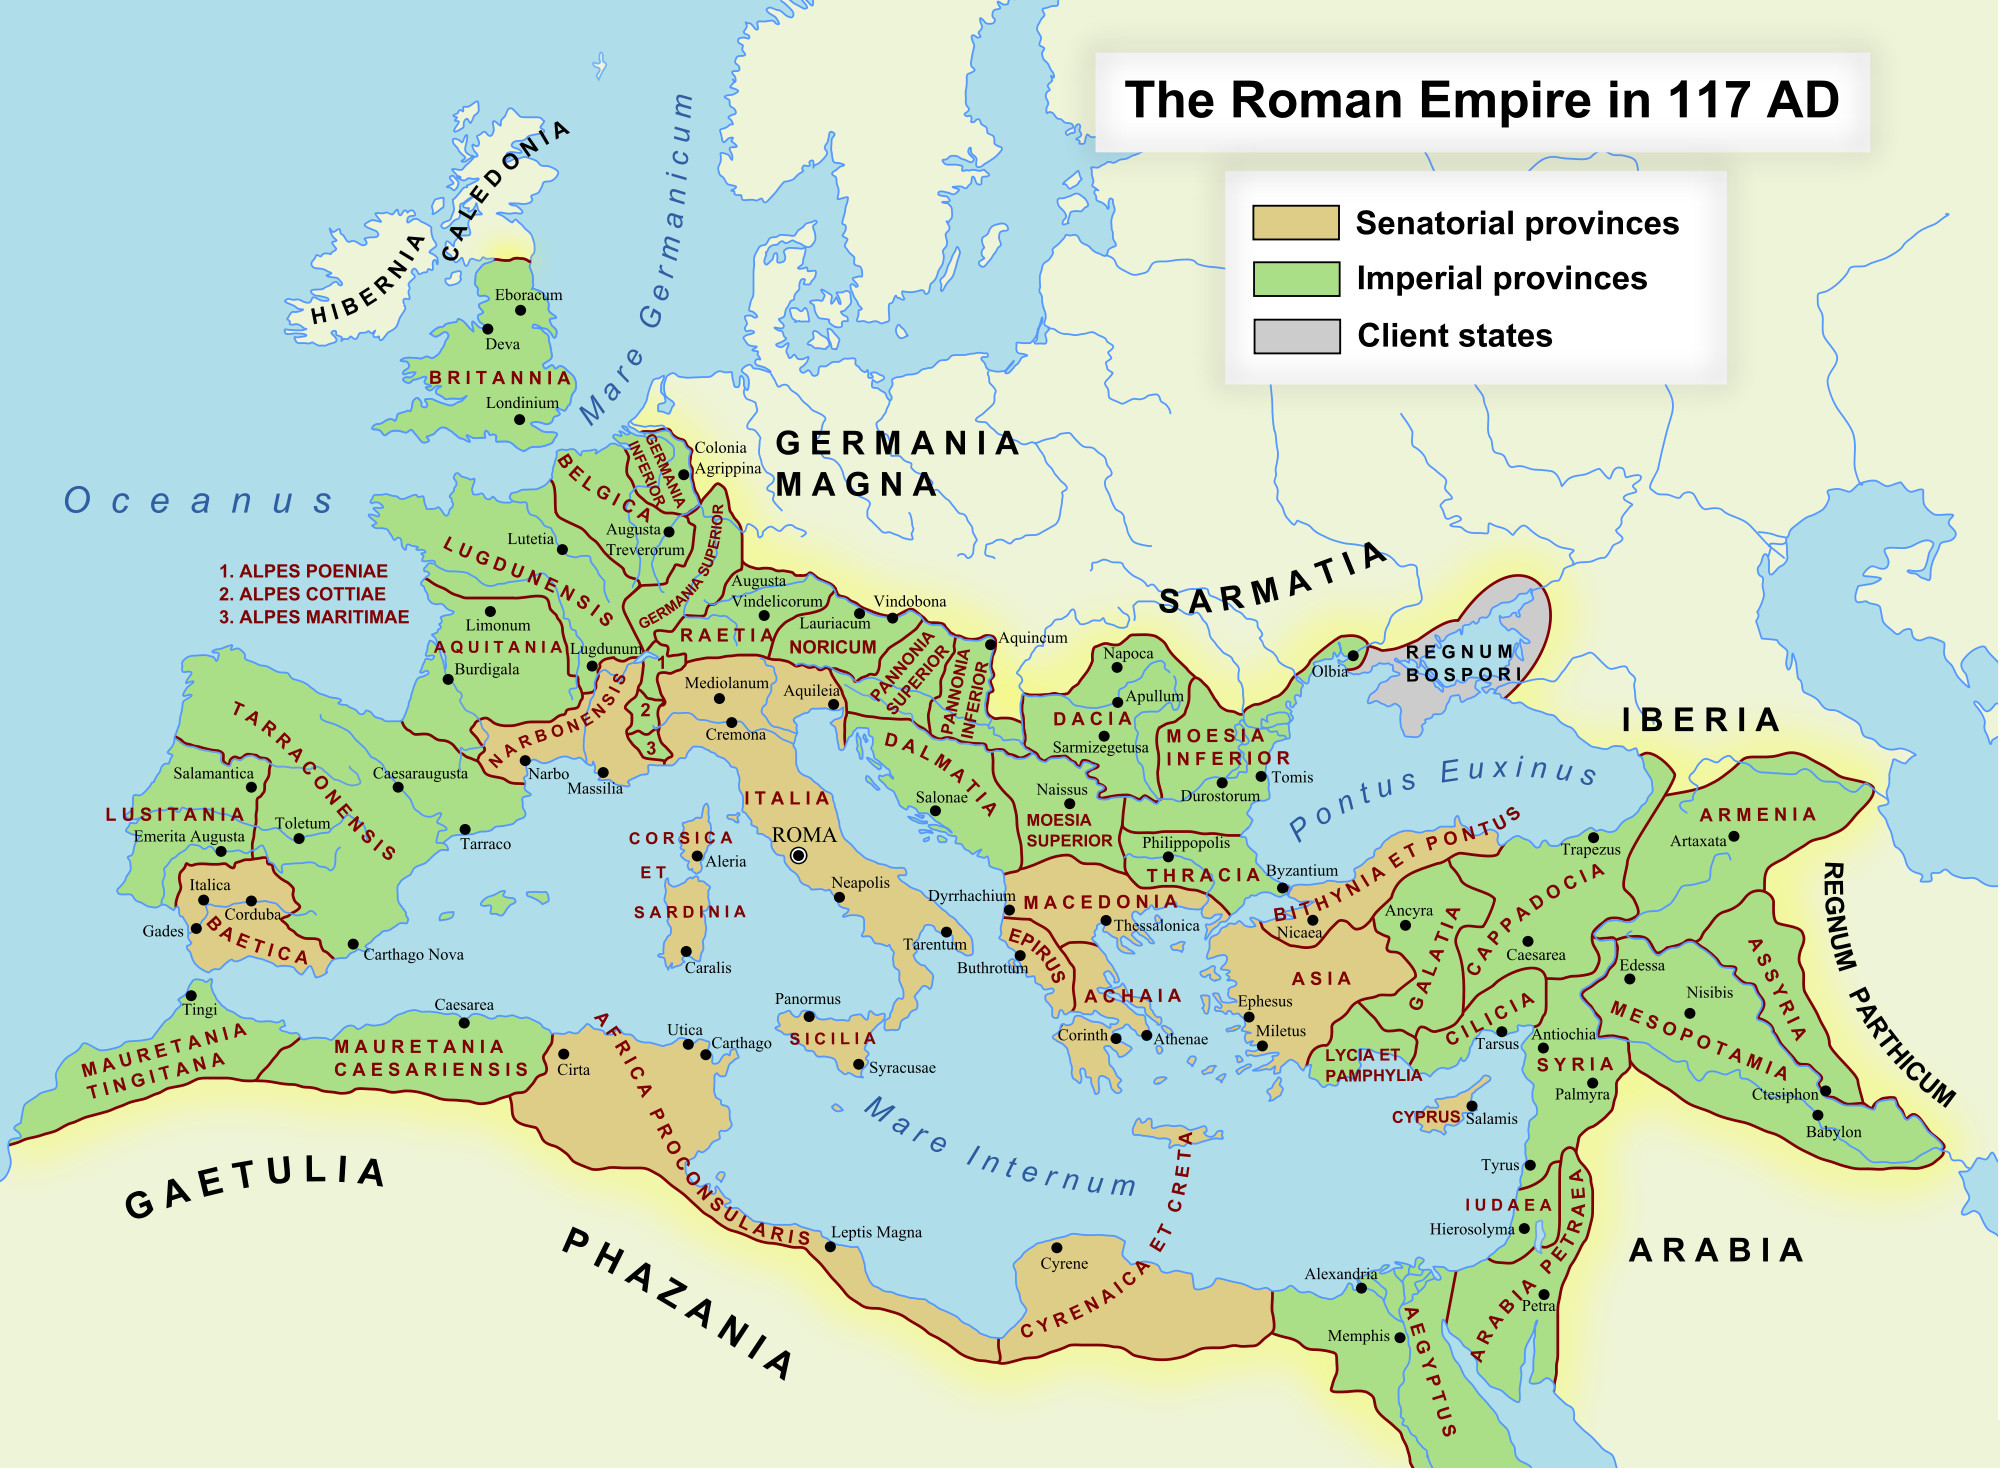 This depict the Empire's territories at its height in the second century AD. Its downfall followed just a few centuries later, the sheer size of it a contibuting factor to its collapse.